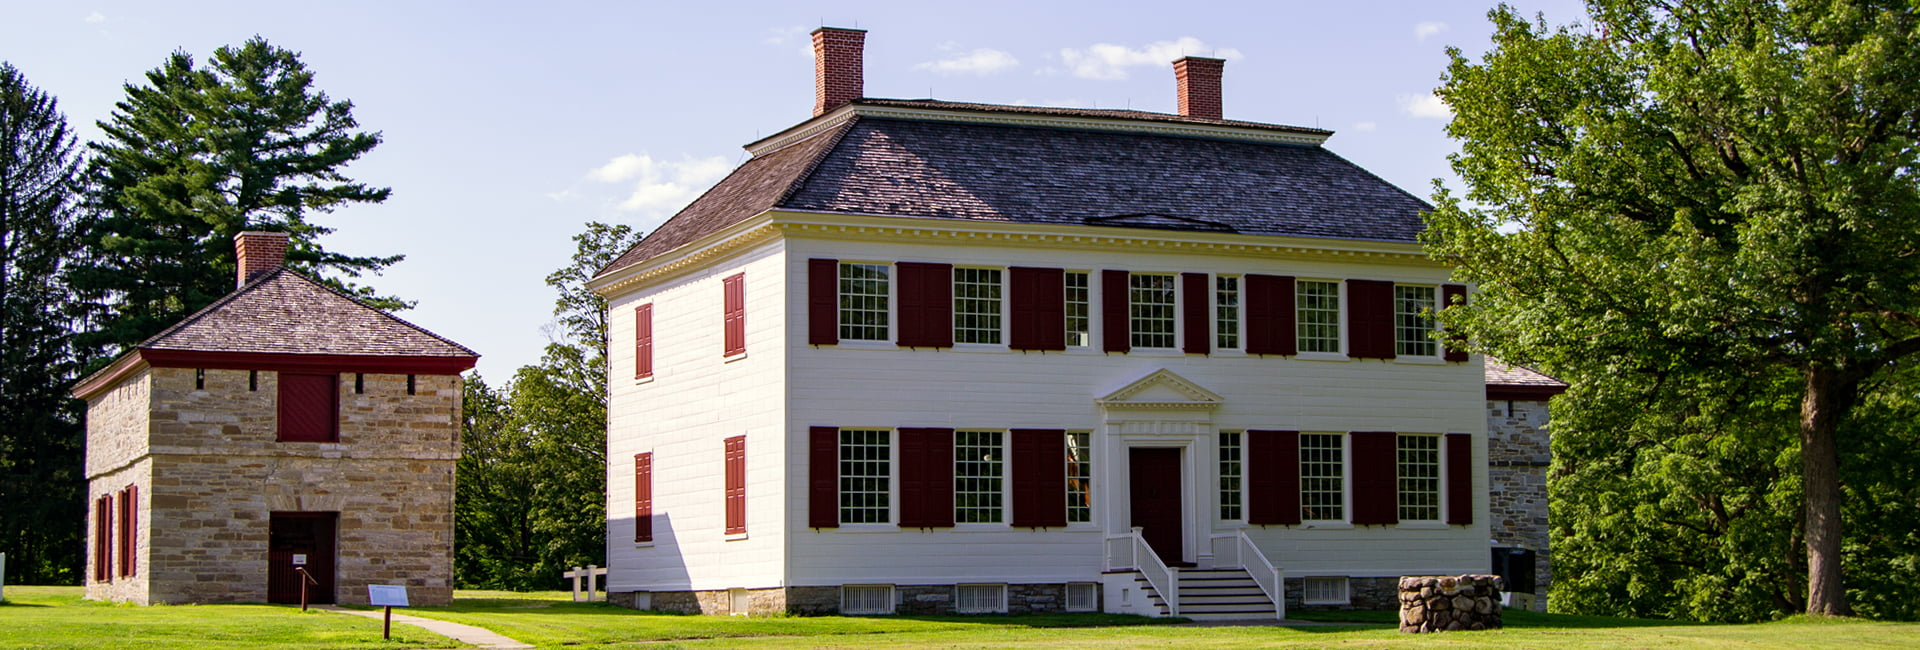 AFrey_Capital-Saratoga Region - Johnson Hall State Historic Site, Main house and servant's quarters